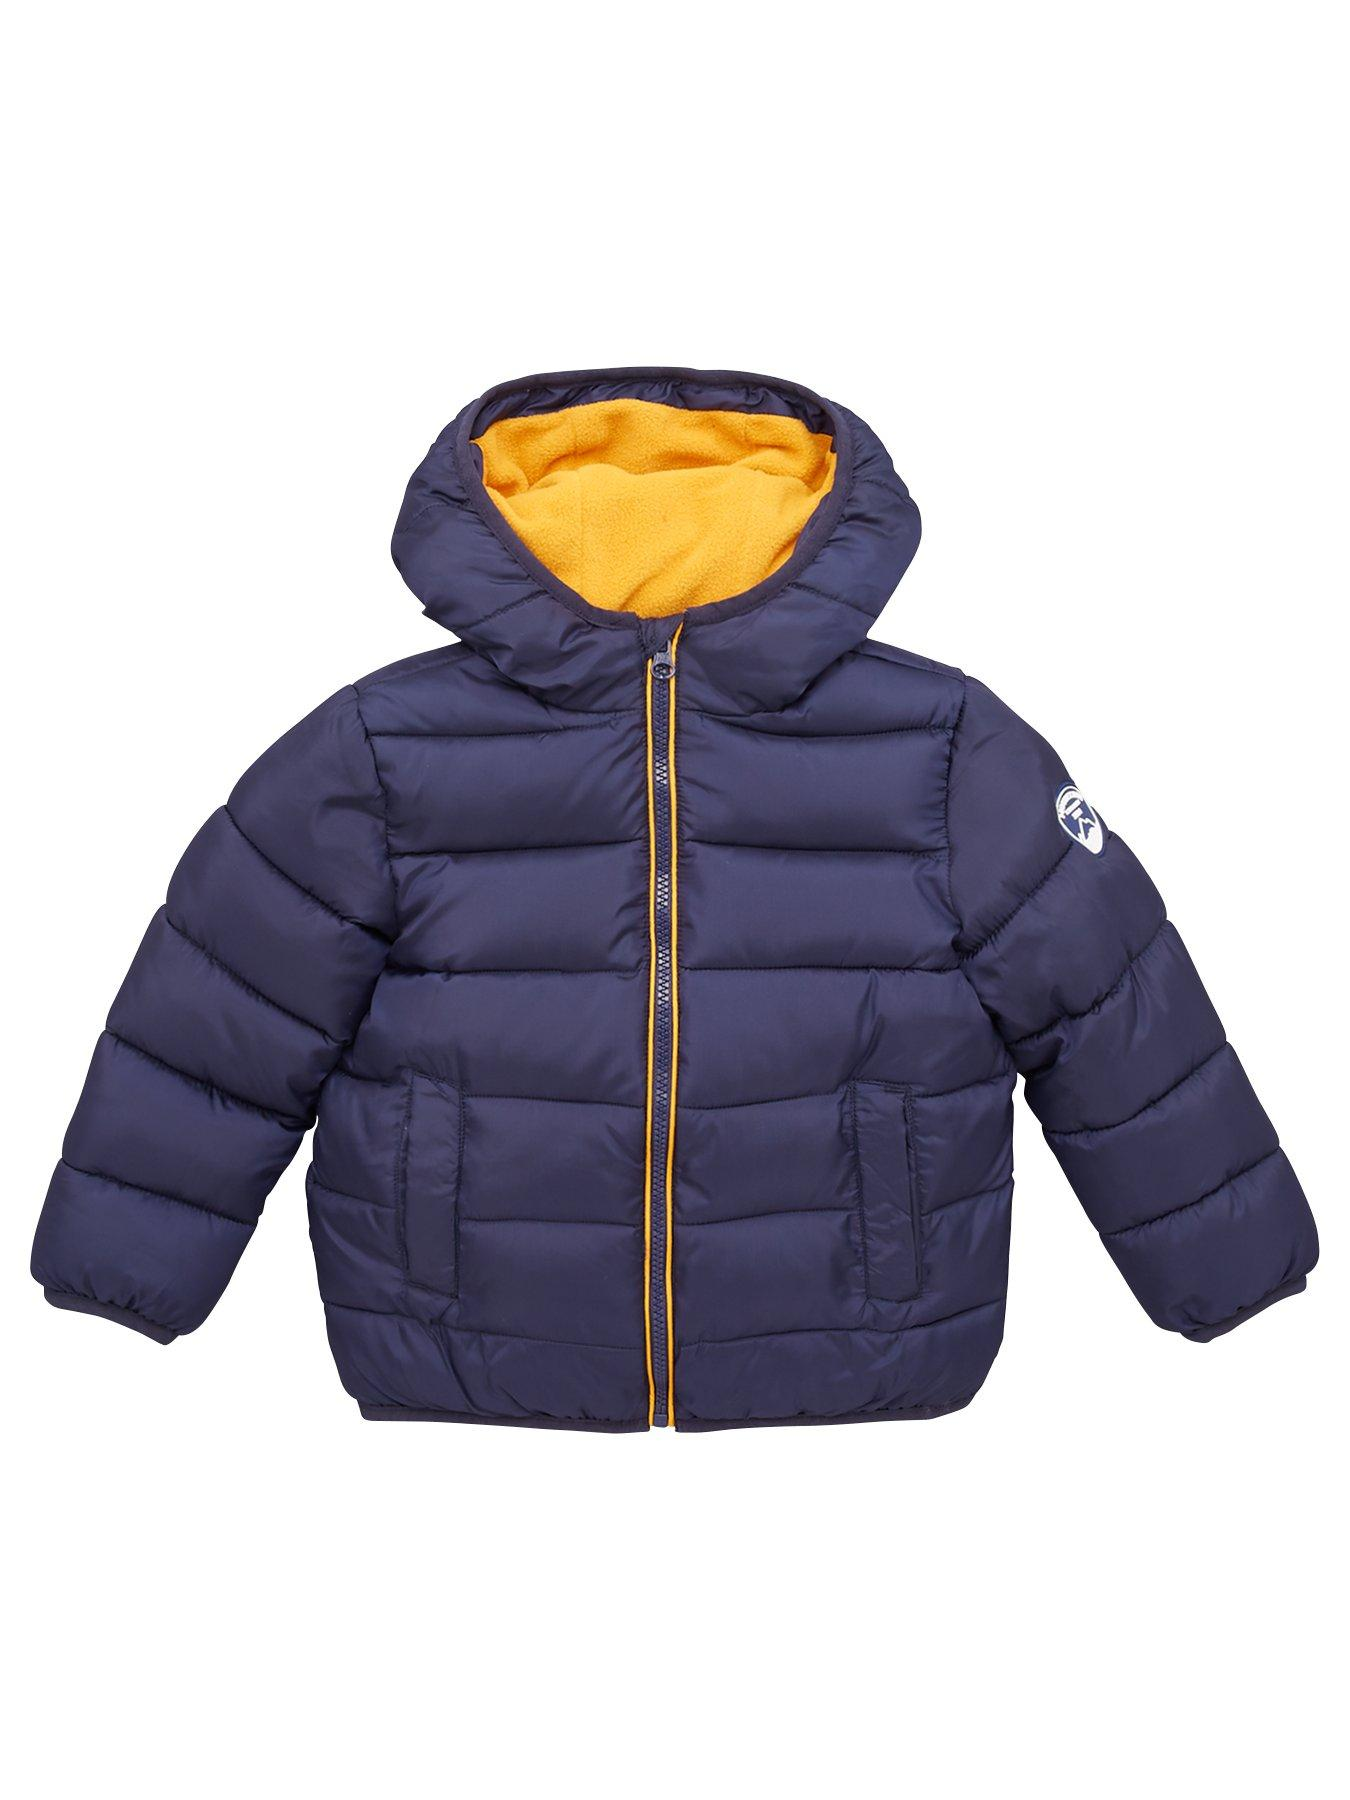 10 New Boys Light Summer Jacket With Hood 6 Size 4 8 12 /& 14  years